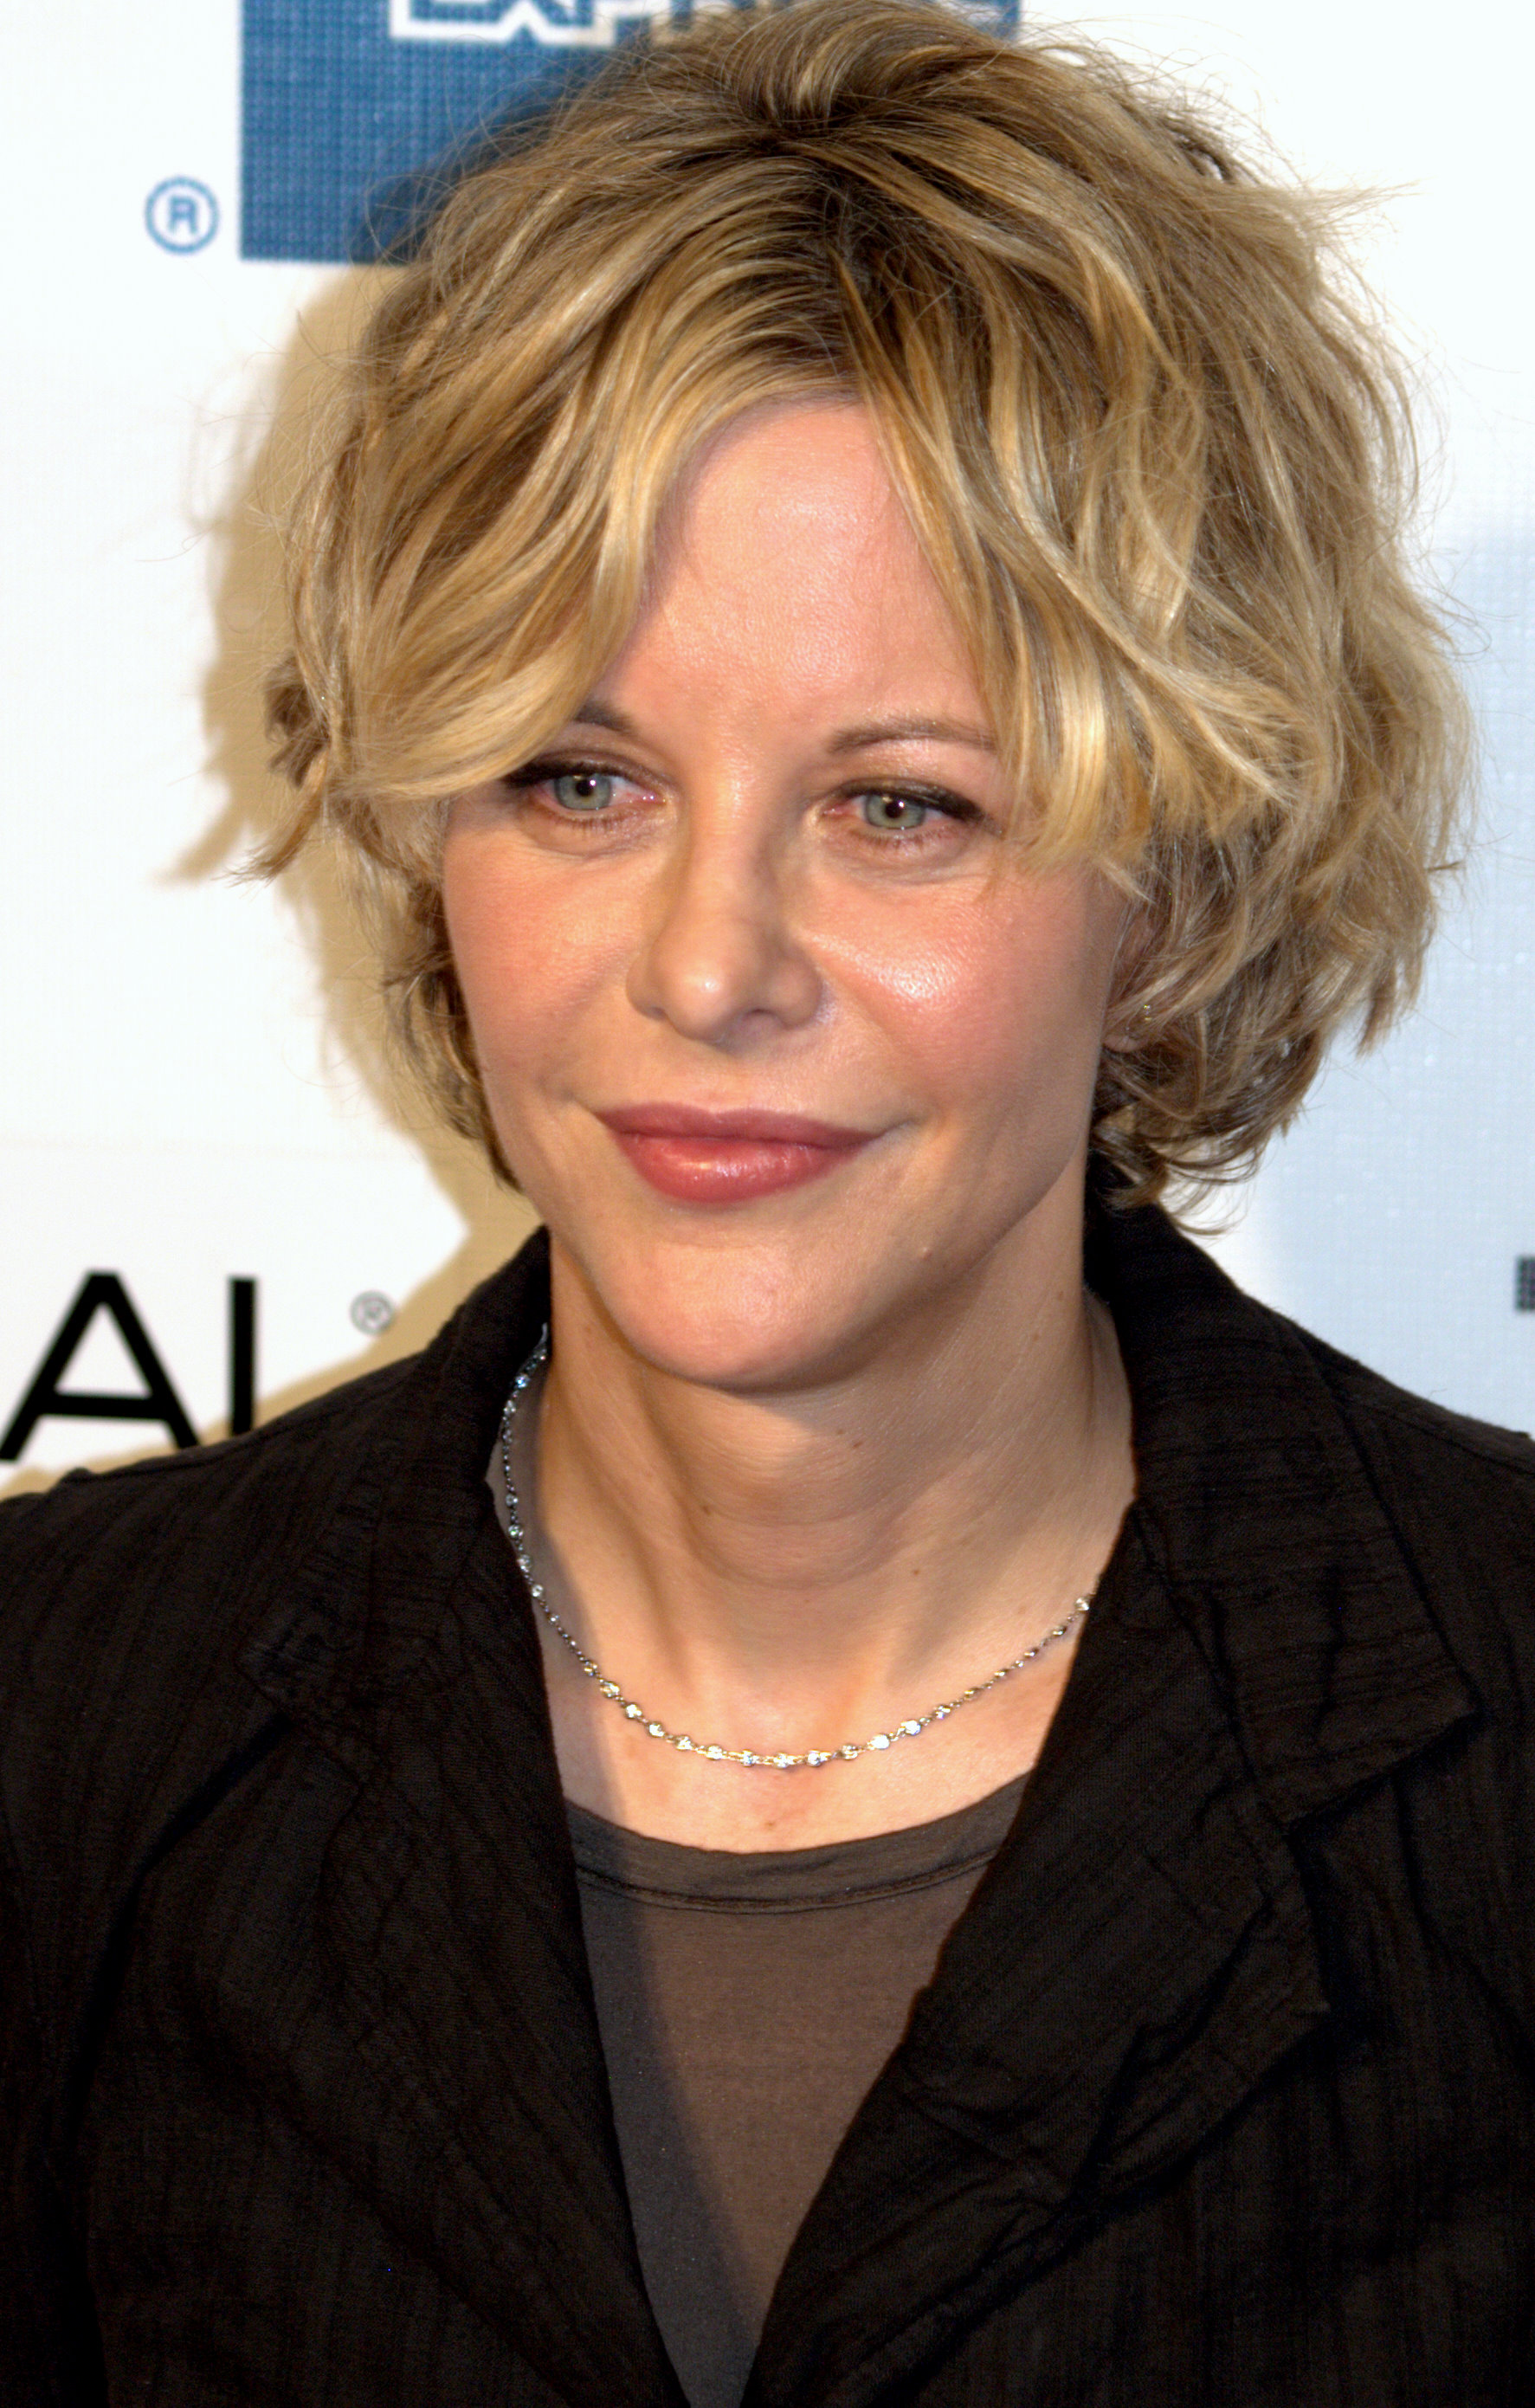 File:Meg Ryan 2009 portrait.jpg - Wikipedia